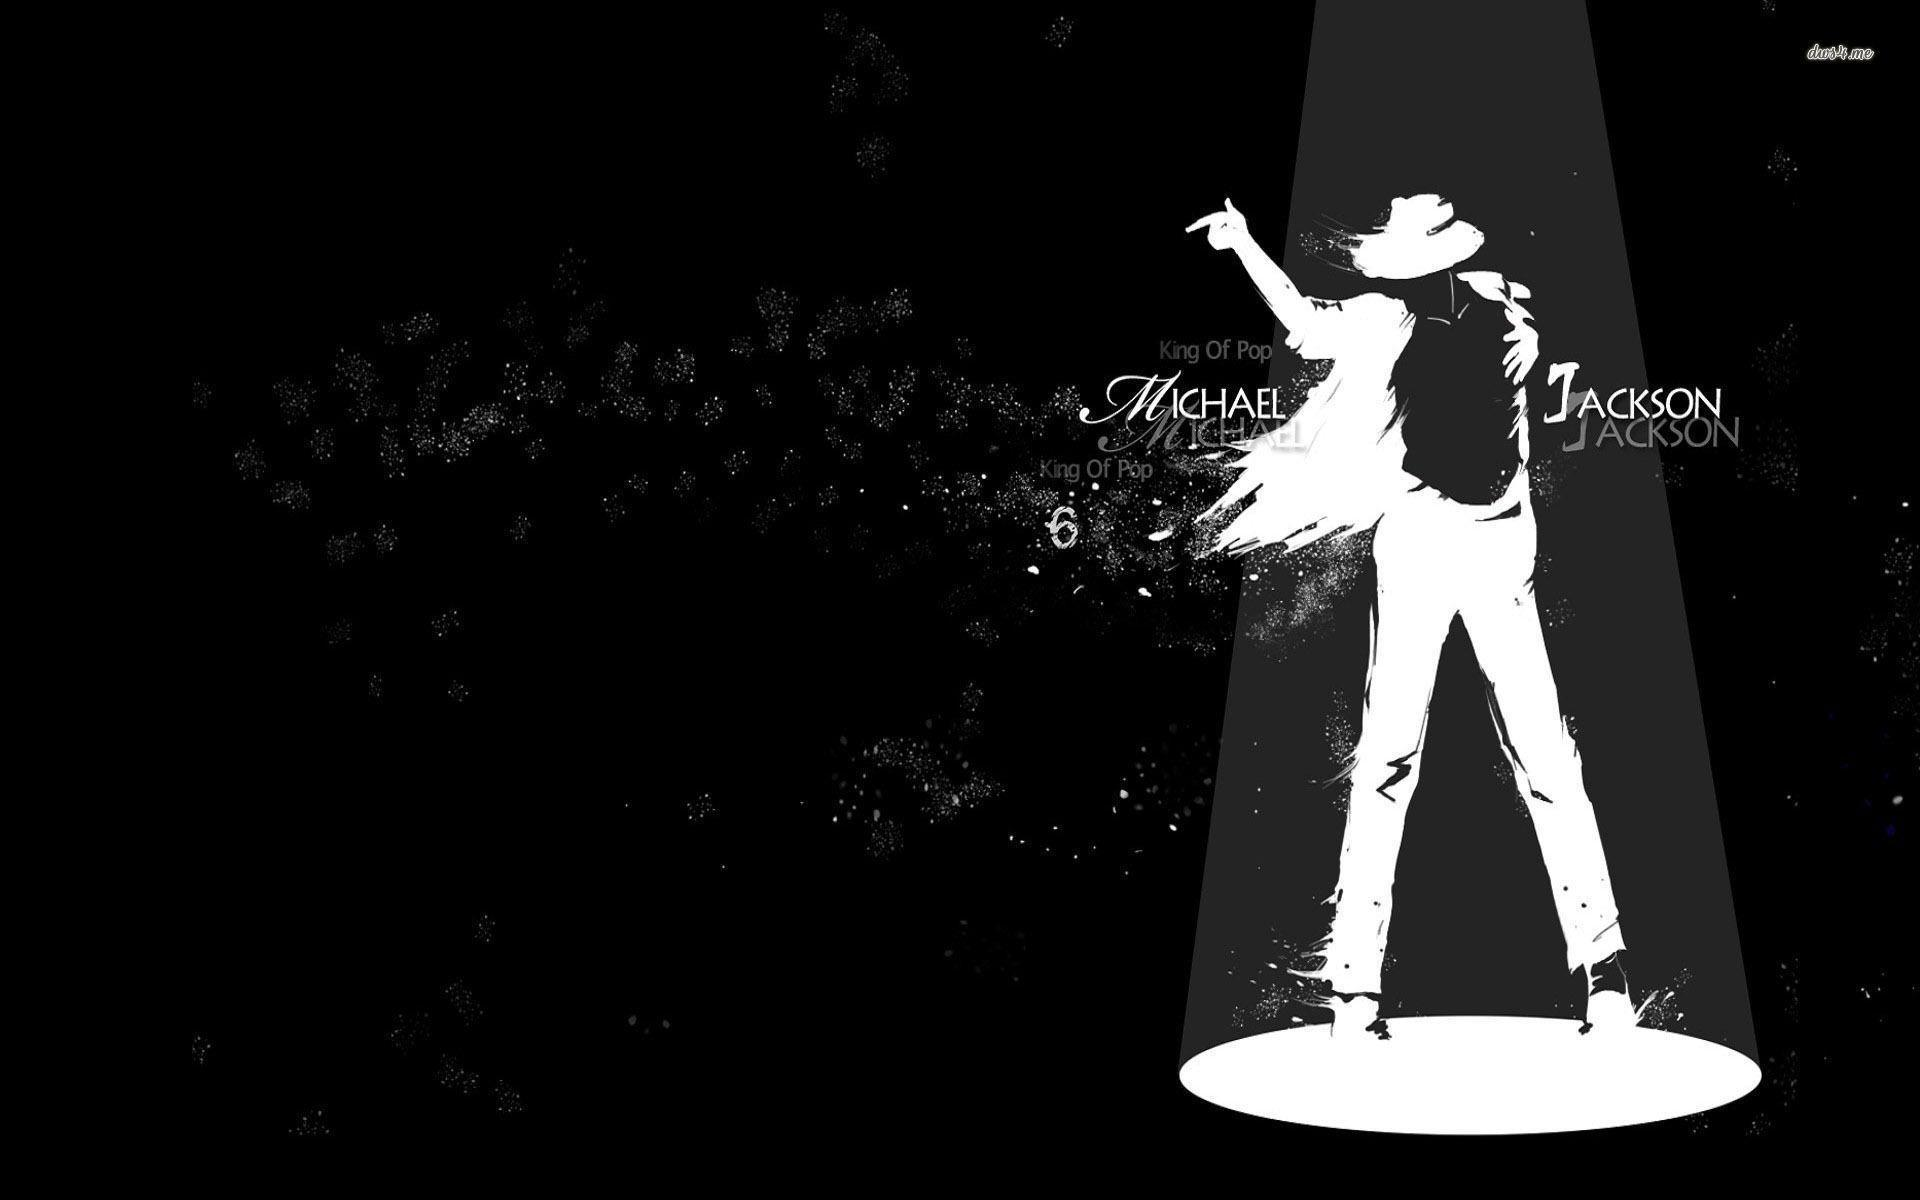 Michael Jackson Wallpaper Hd Background 9 HD Wallpaperscom